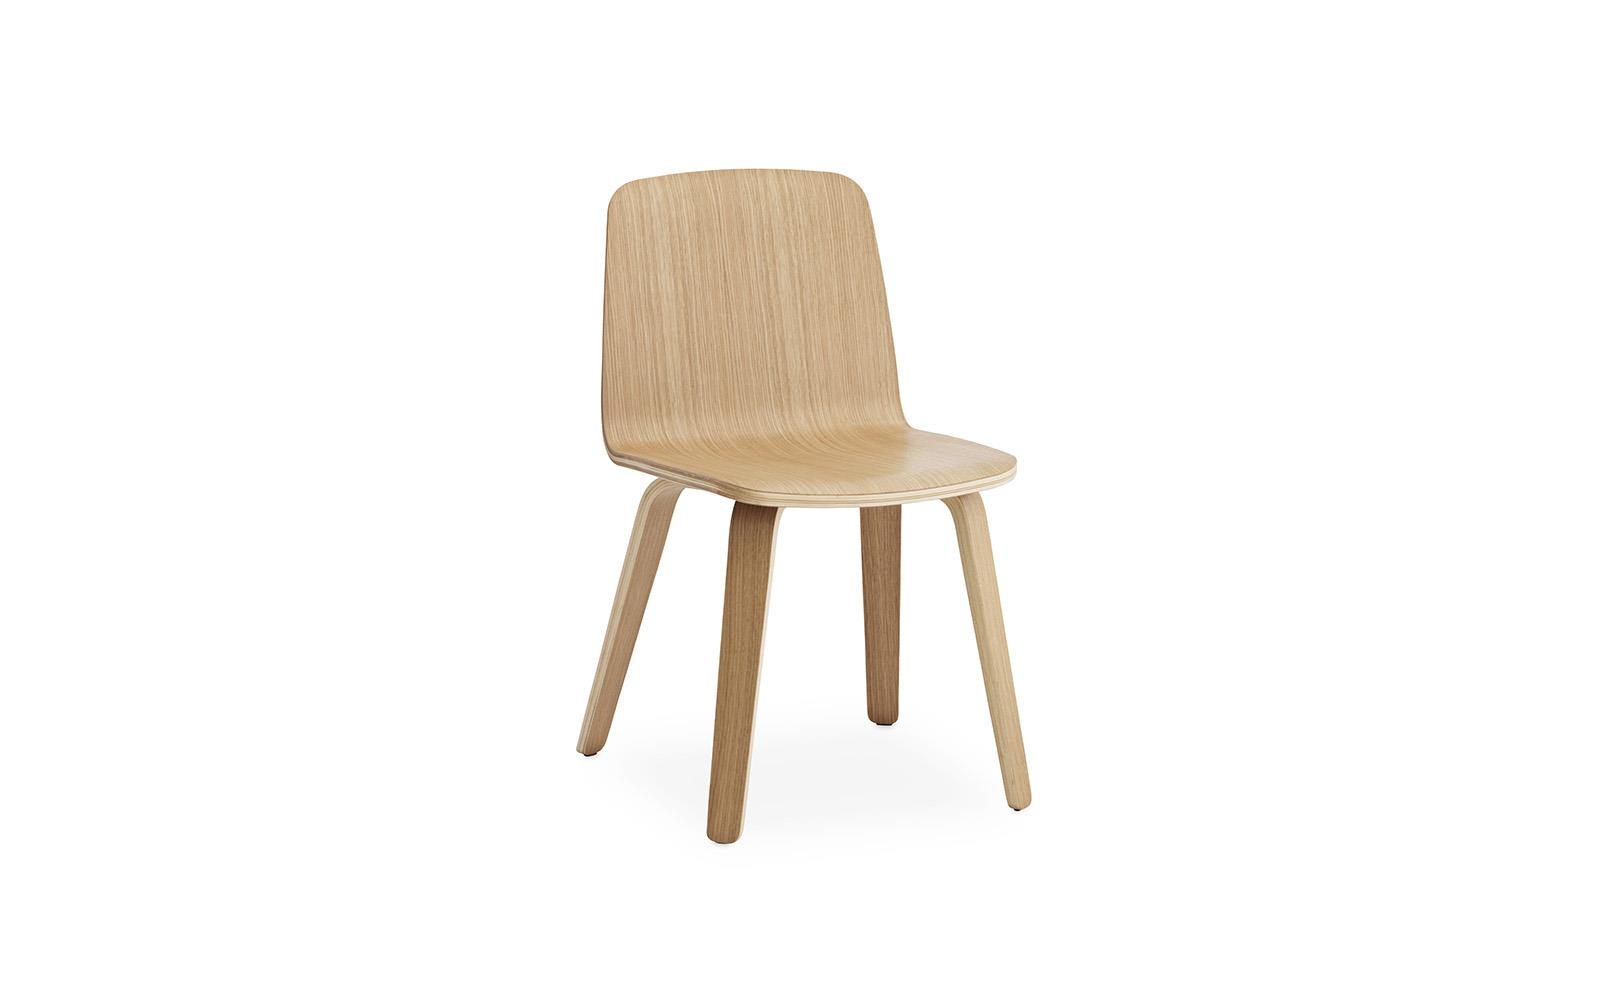 Merveilleux Just Chair Oak1